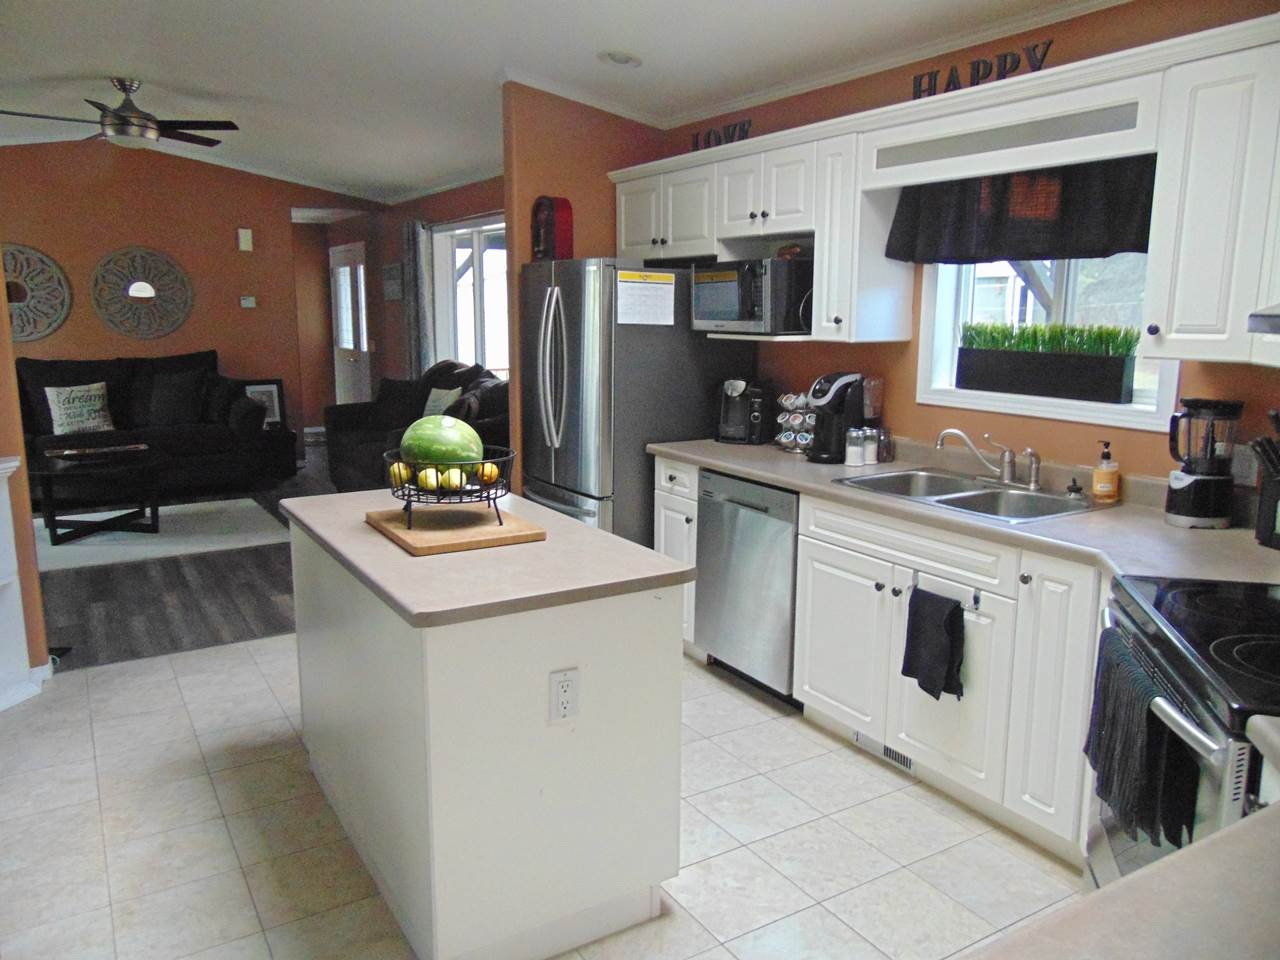 Photo 14: 67 59419 Rge Rd 240: Rural Westlock County Manufactured Home for sale : MLS(r) # E4064786